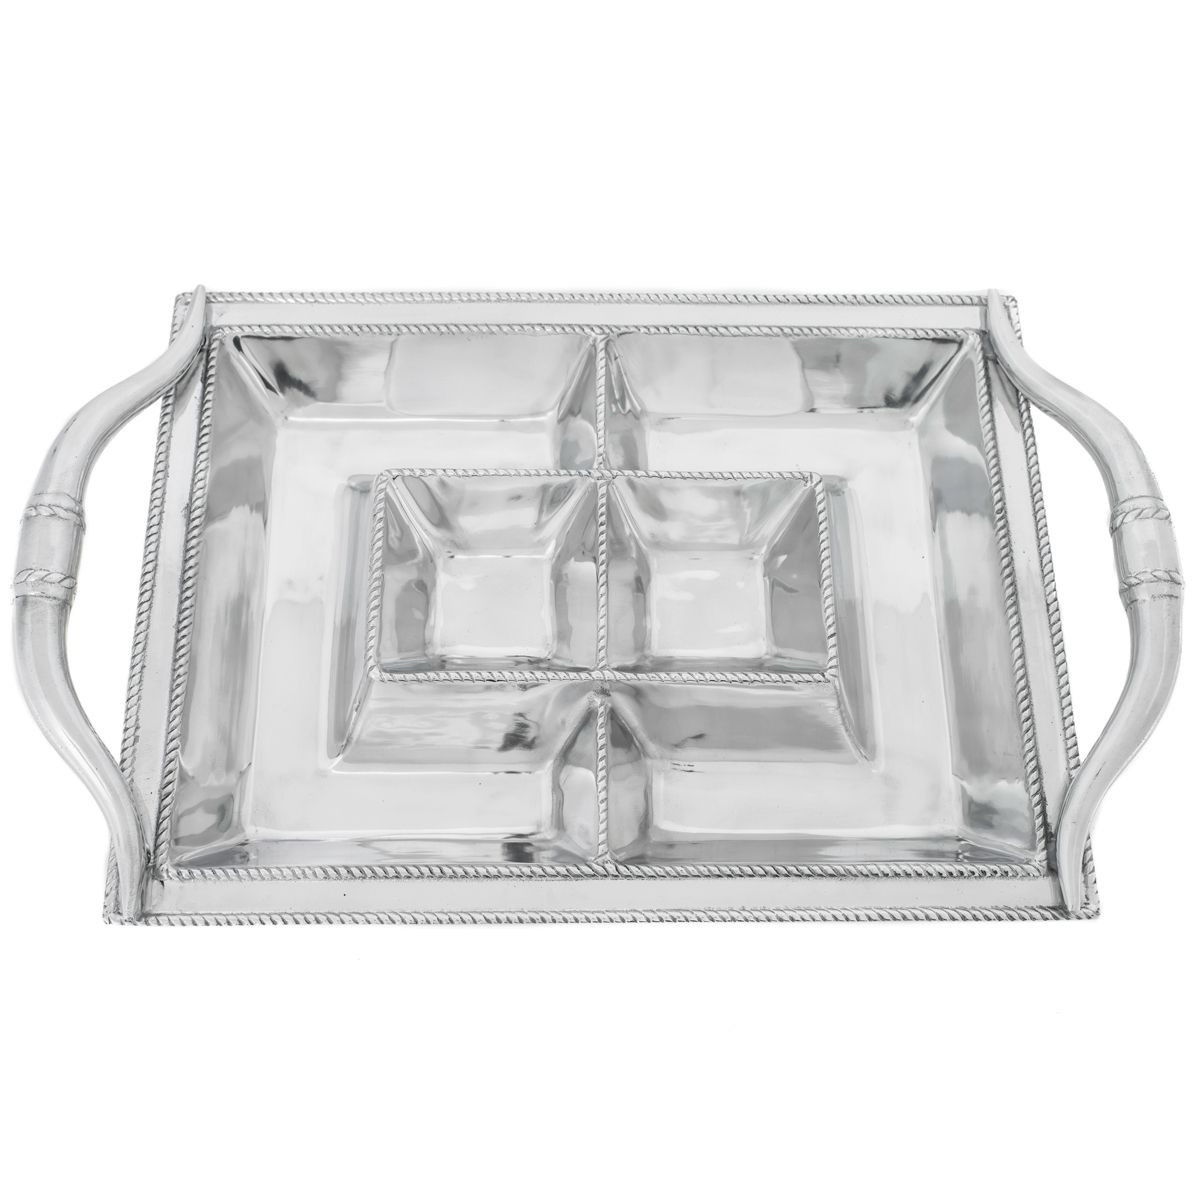 Aluminum Longhorn Entertainment Tray